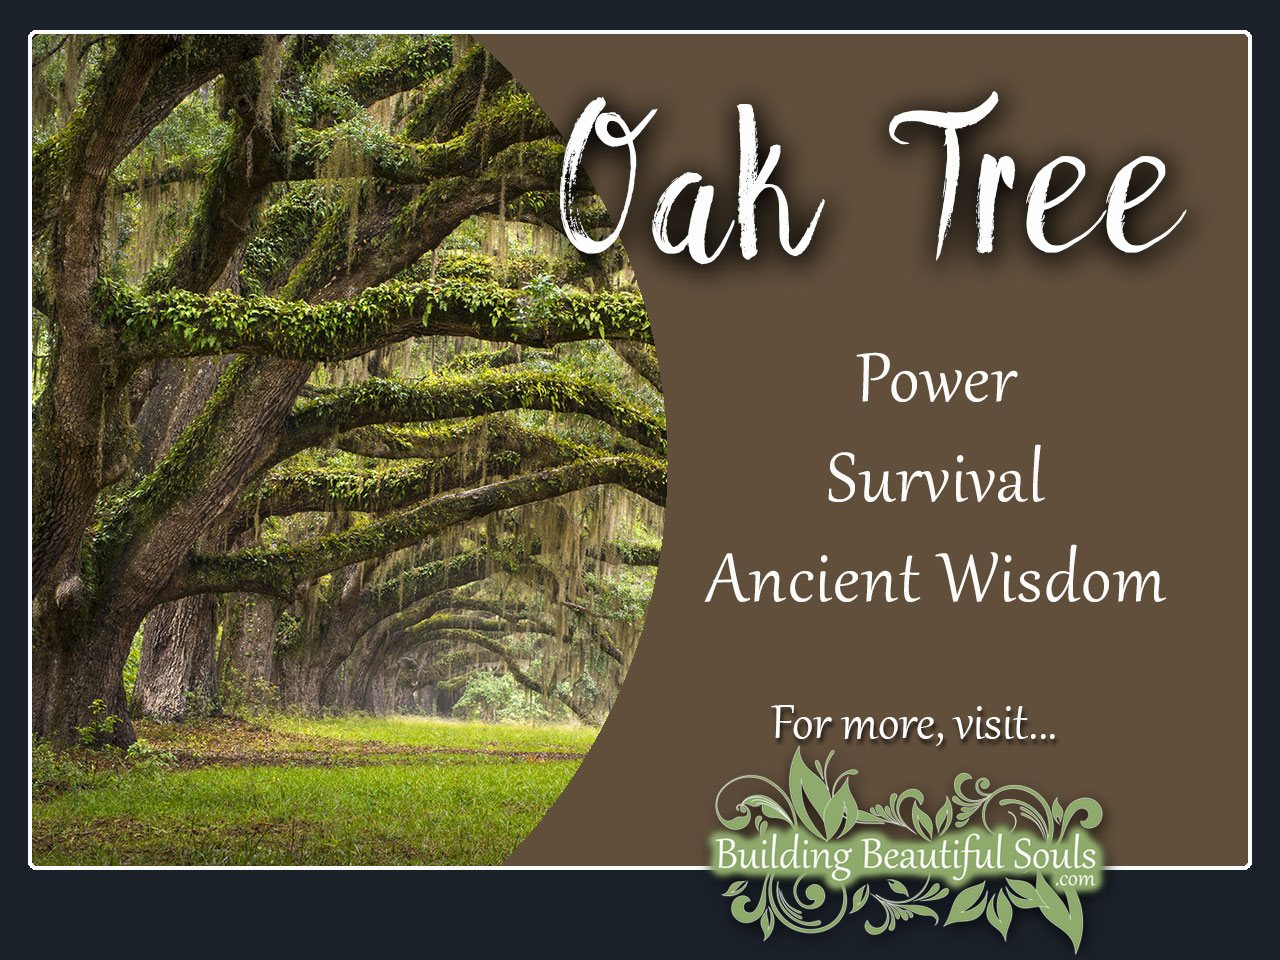 Oak tree meaning symbolism tree symbolism meanings What is the meaning of tree